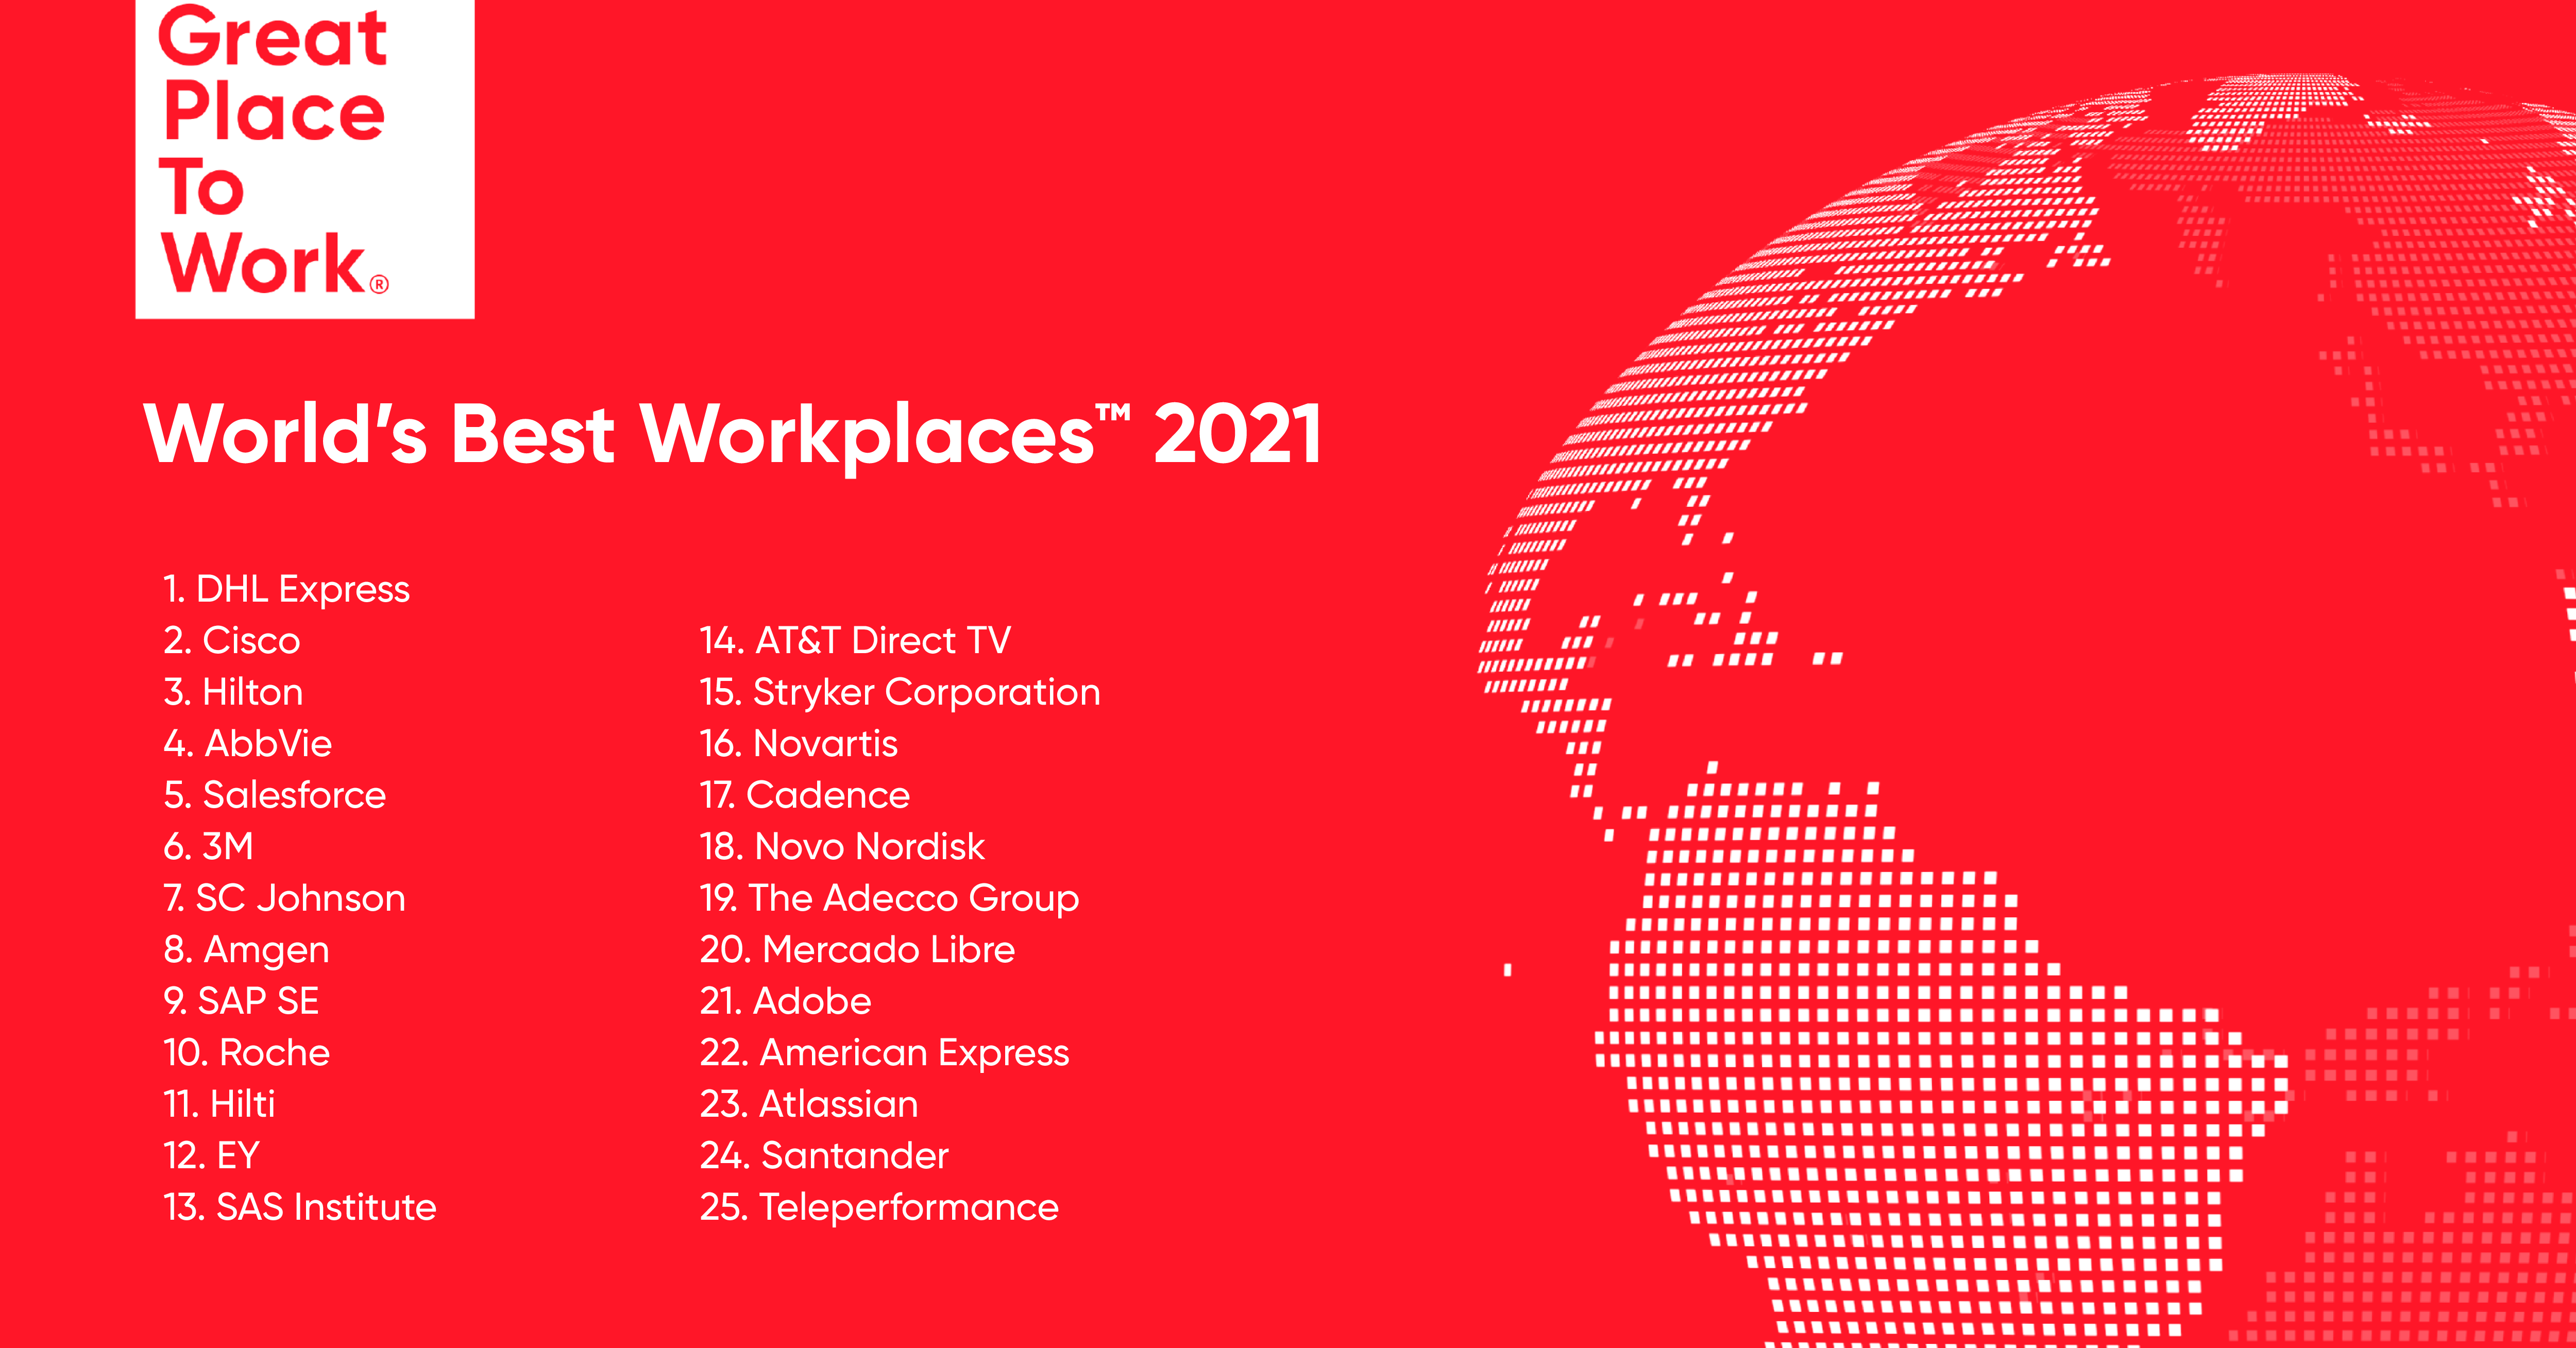 Great Place to Work® Announces the World's Best Workplaces™ 2021